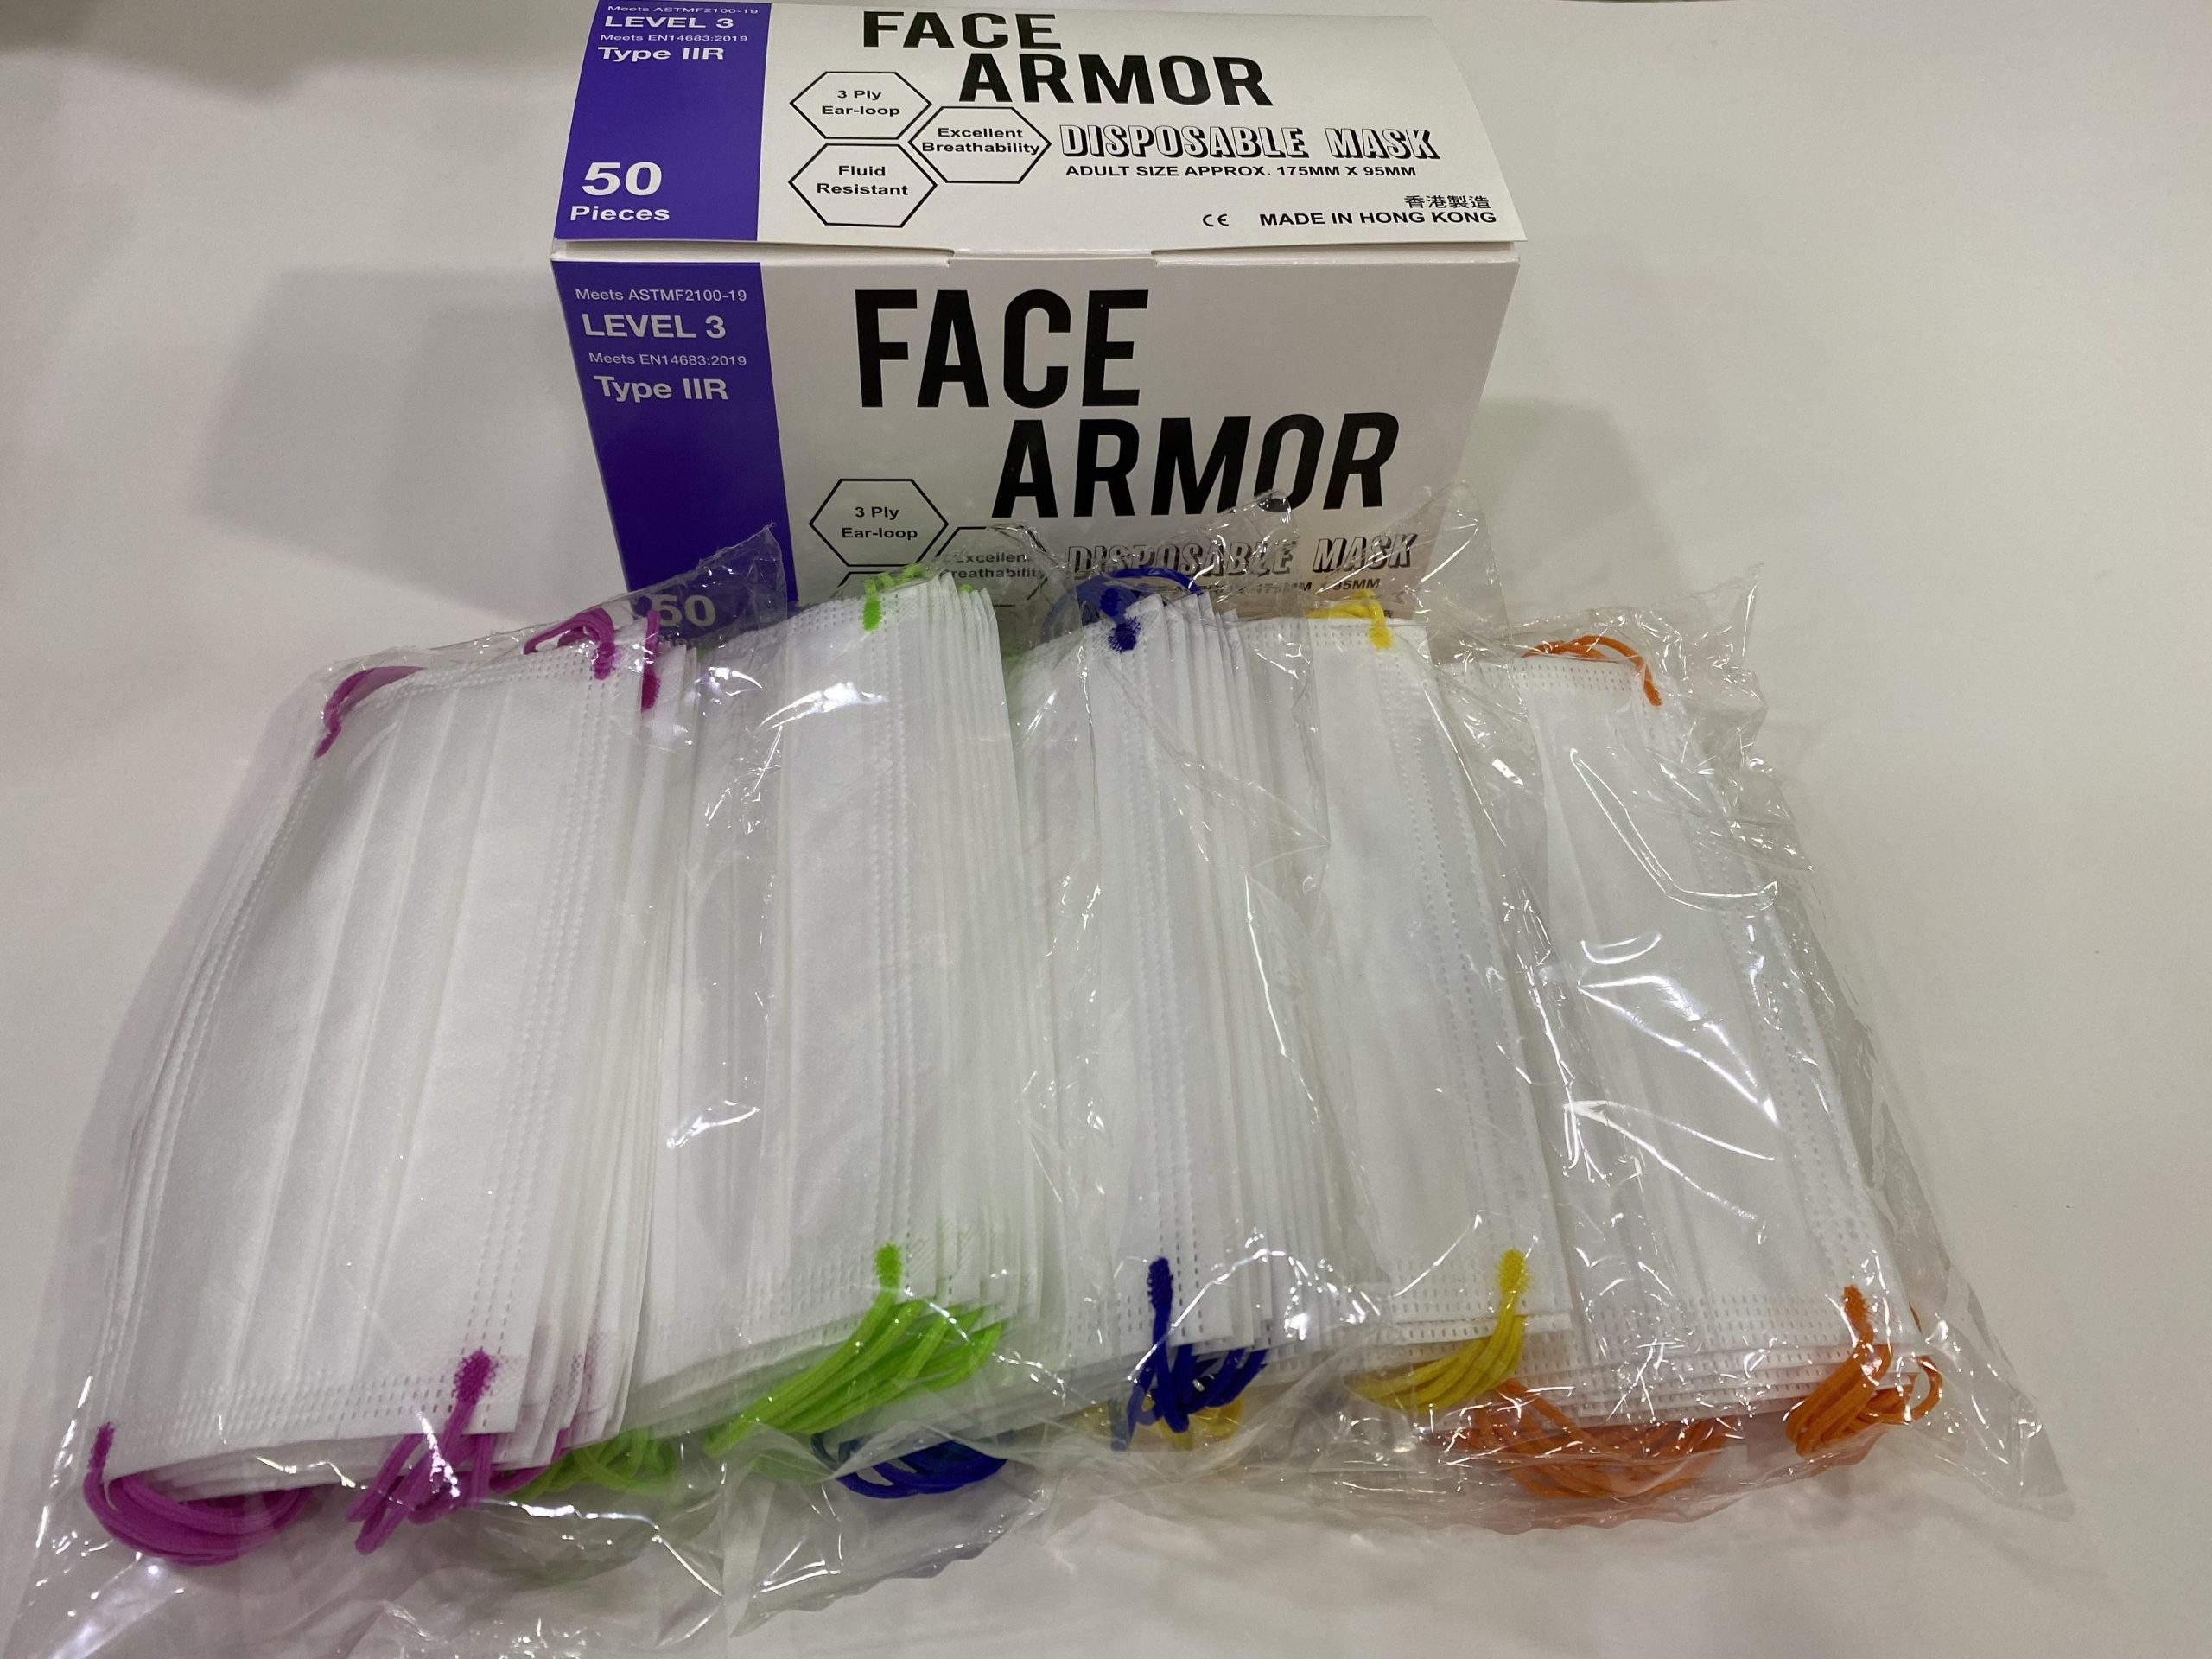 Face Armor Disposable Masks | ASTM LEVEL 3 | Made in Hong Kong| 50 PIECES | WHITE (MIXED COLOR EARLOOP)